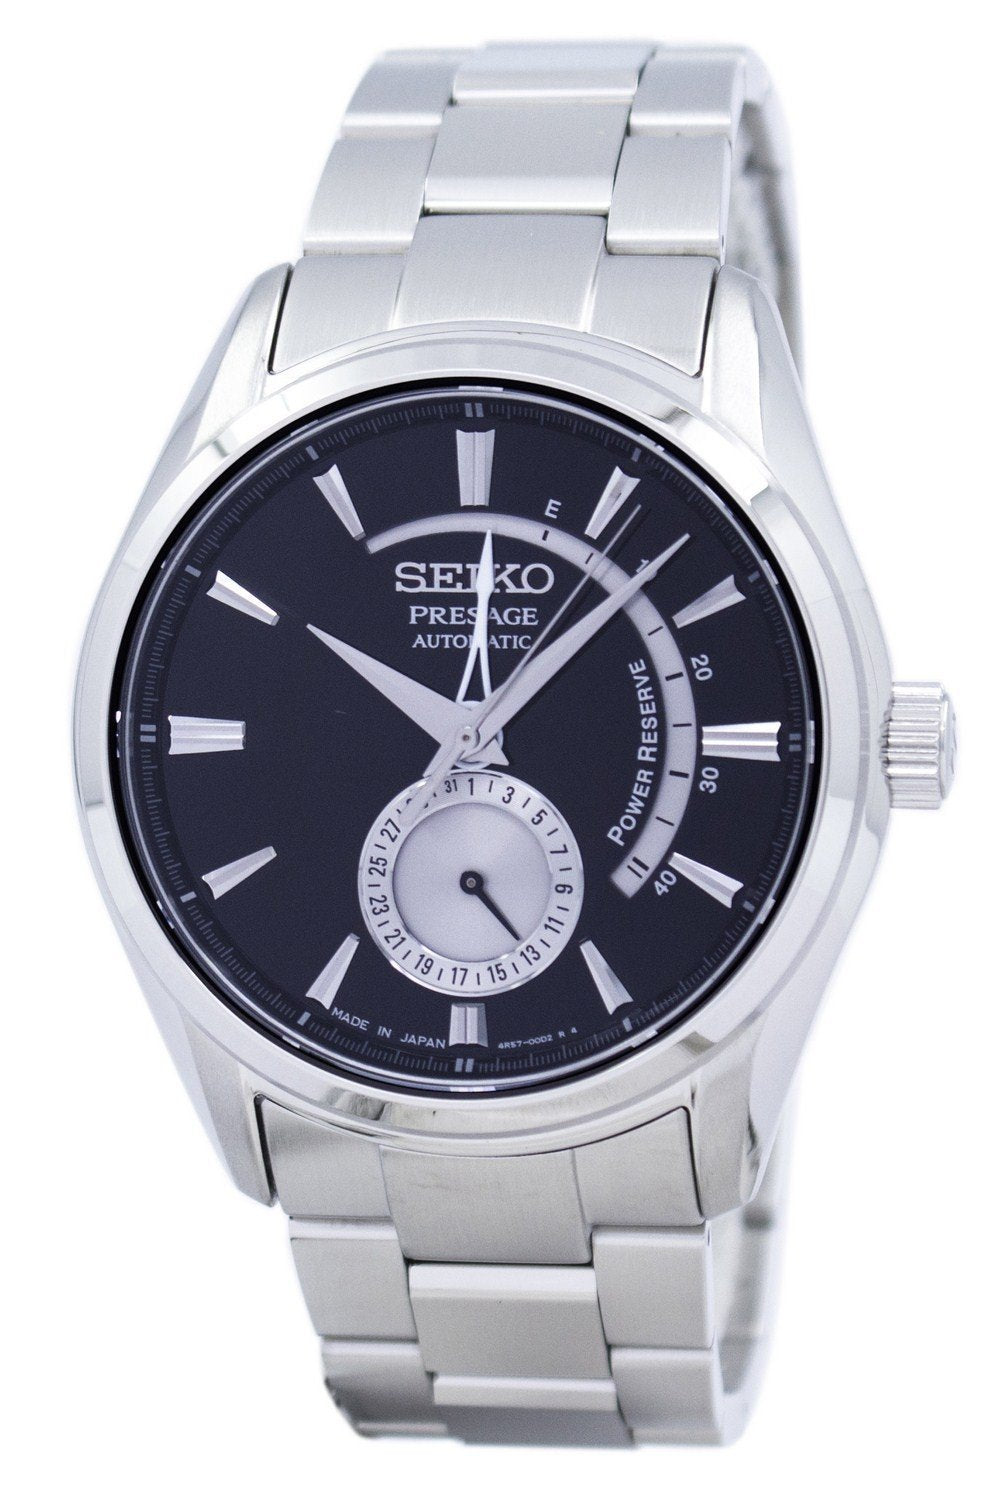 Seiko Presage Automatic Japan Made Power Reserve SSA351 SSA351J1 SSA351J Men's Watch